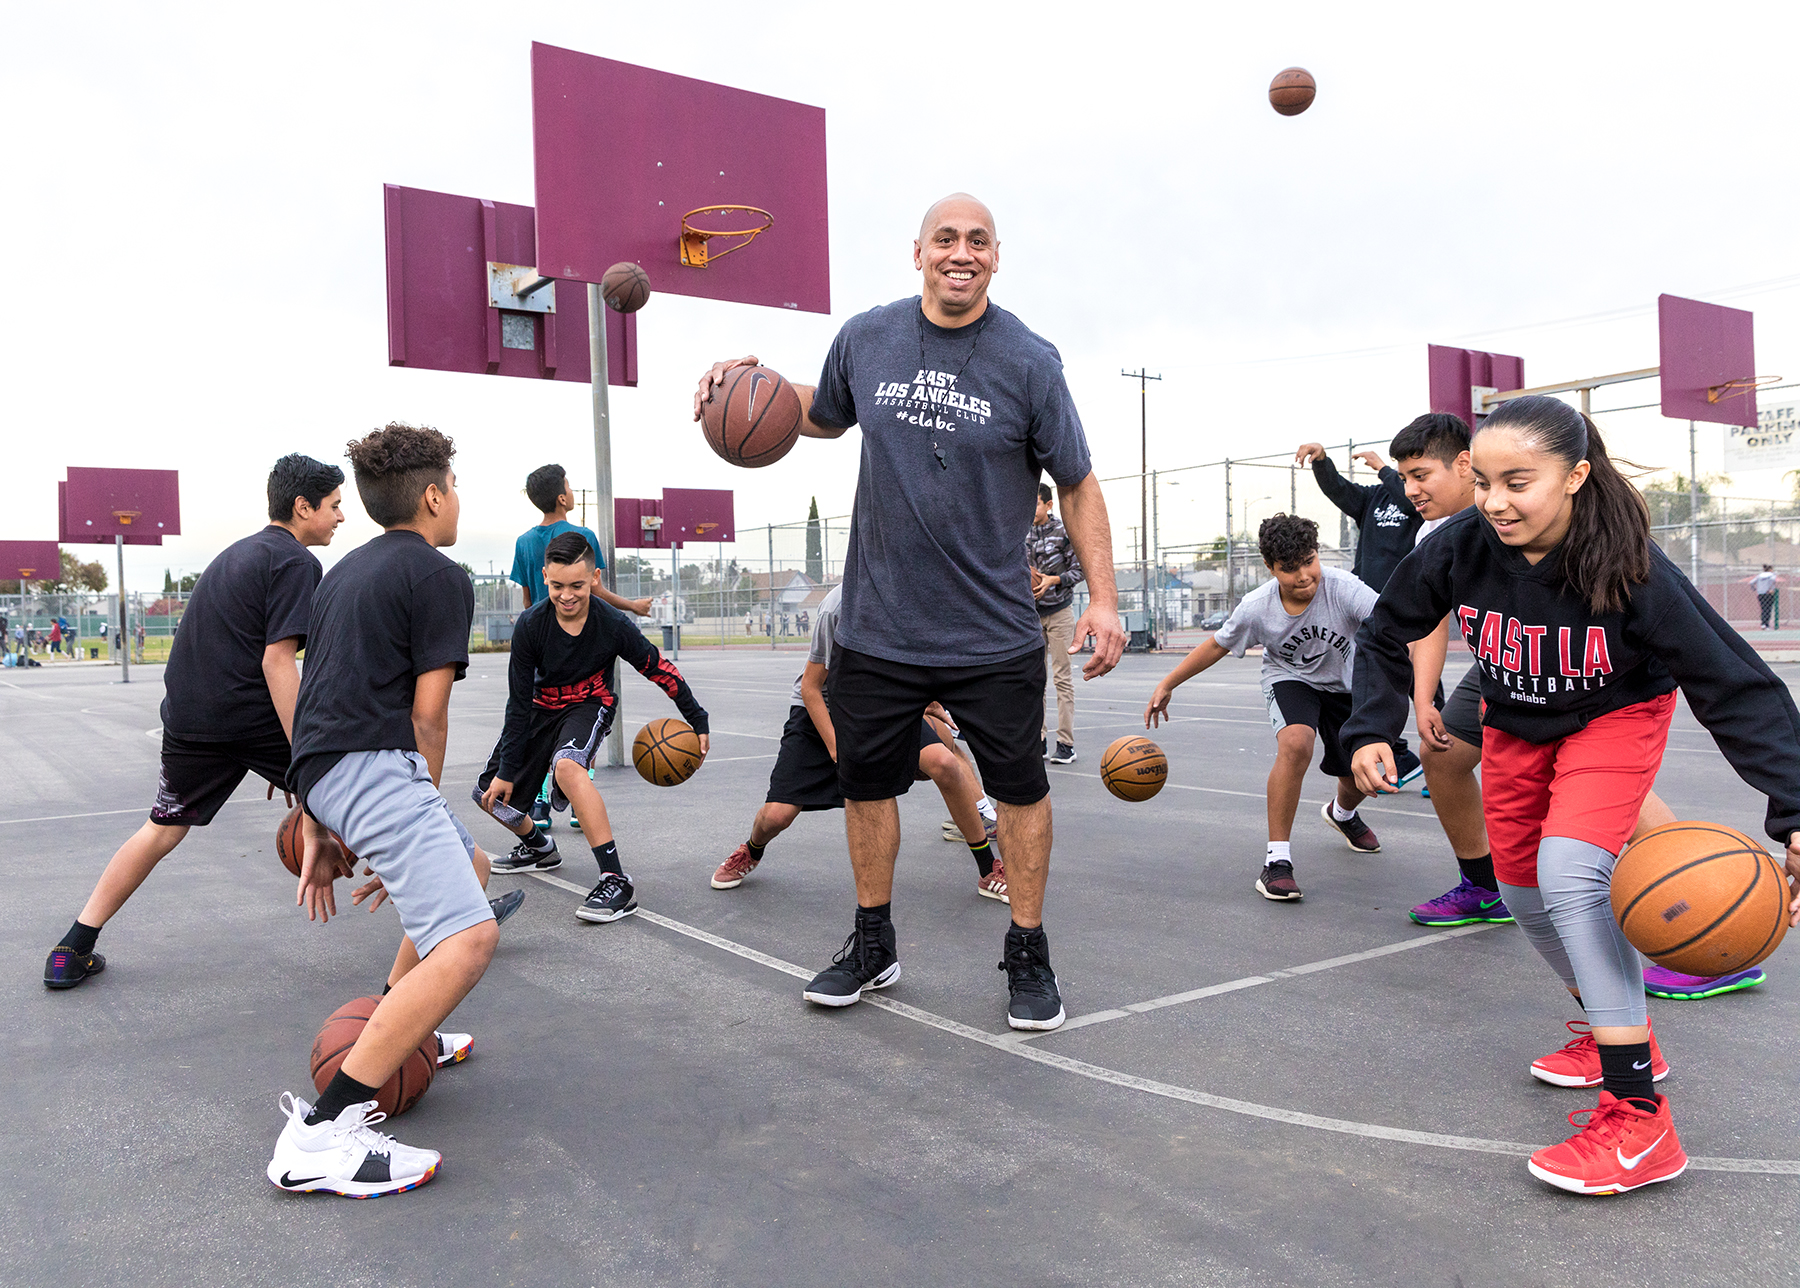 How a Local Basketball Club Started for Kids Who Couldn't Afford Other Leagues Became a Real Competitor